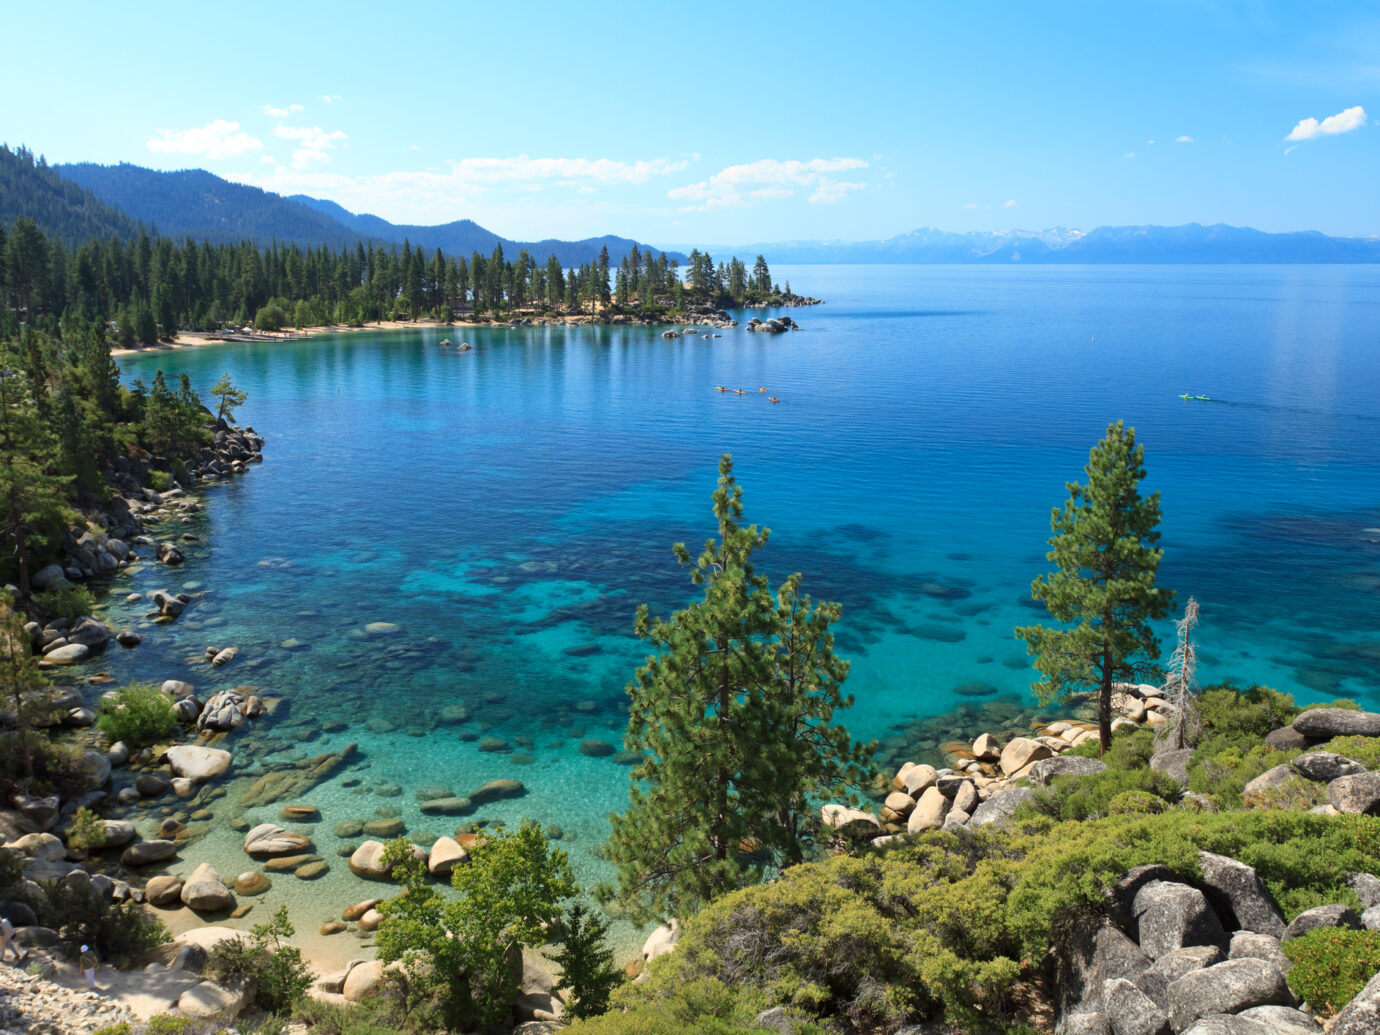 Picture of Lake Tahoe seeing from view point near Sand Harbor. This is east shore line with many rocks and pine trees photographed in the morning during summer.